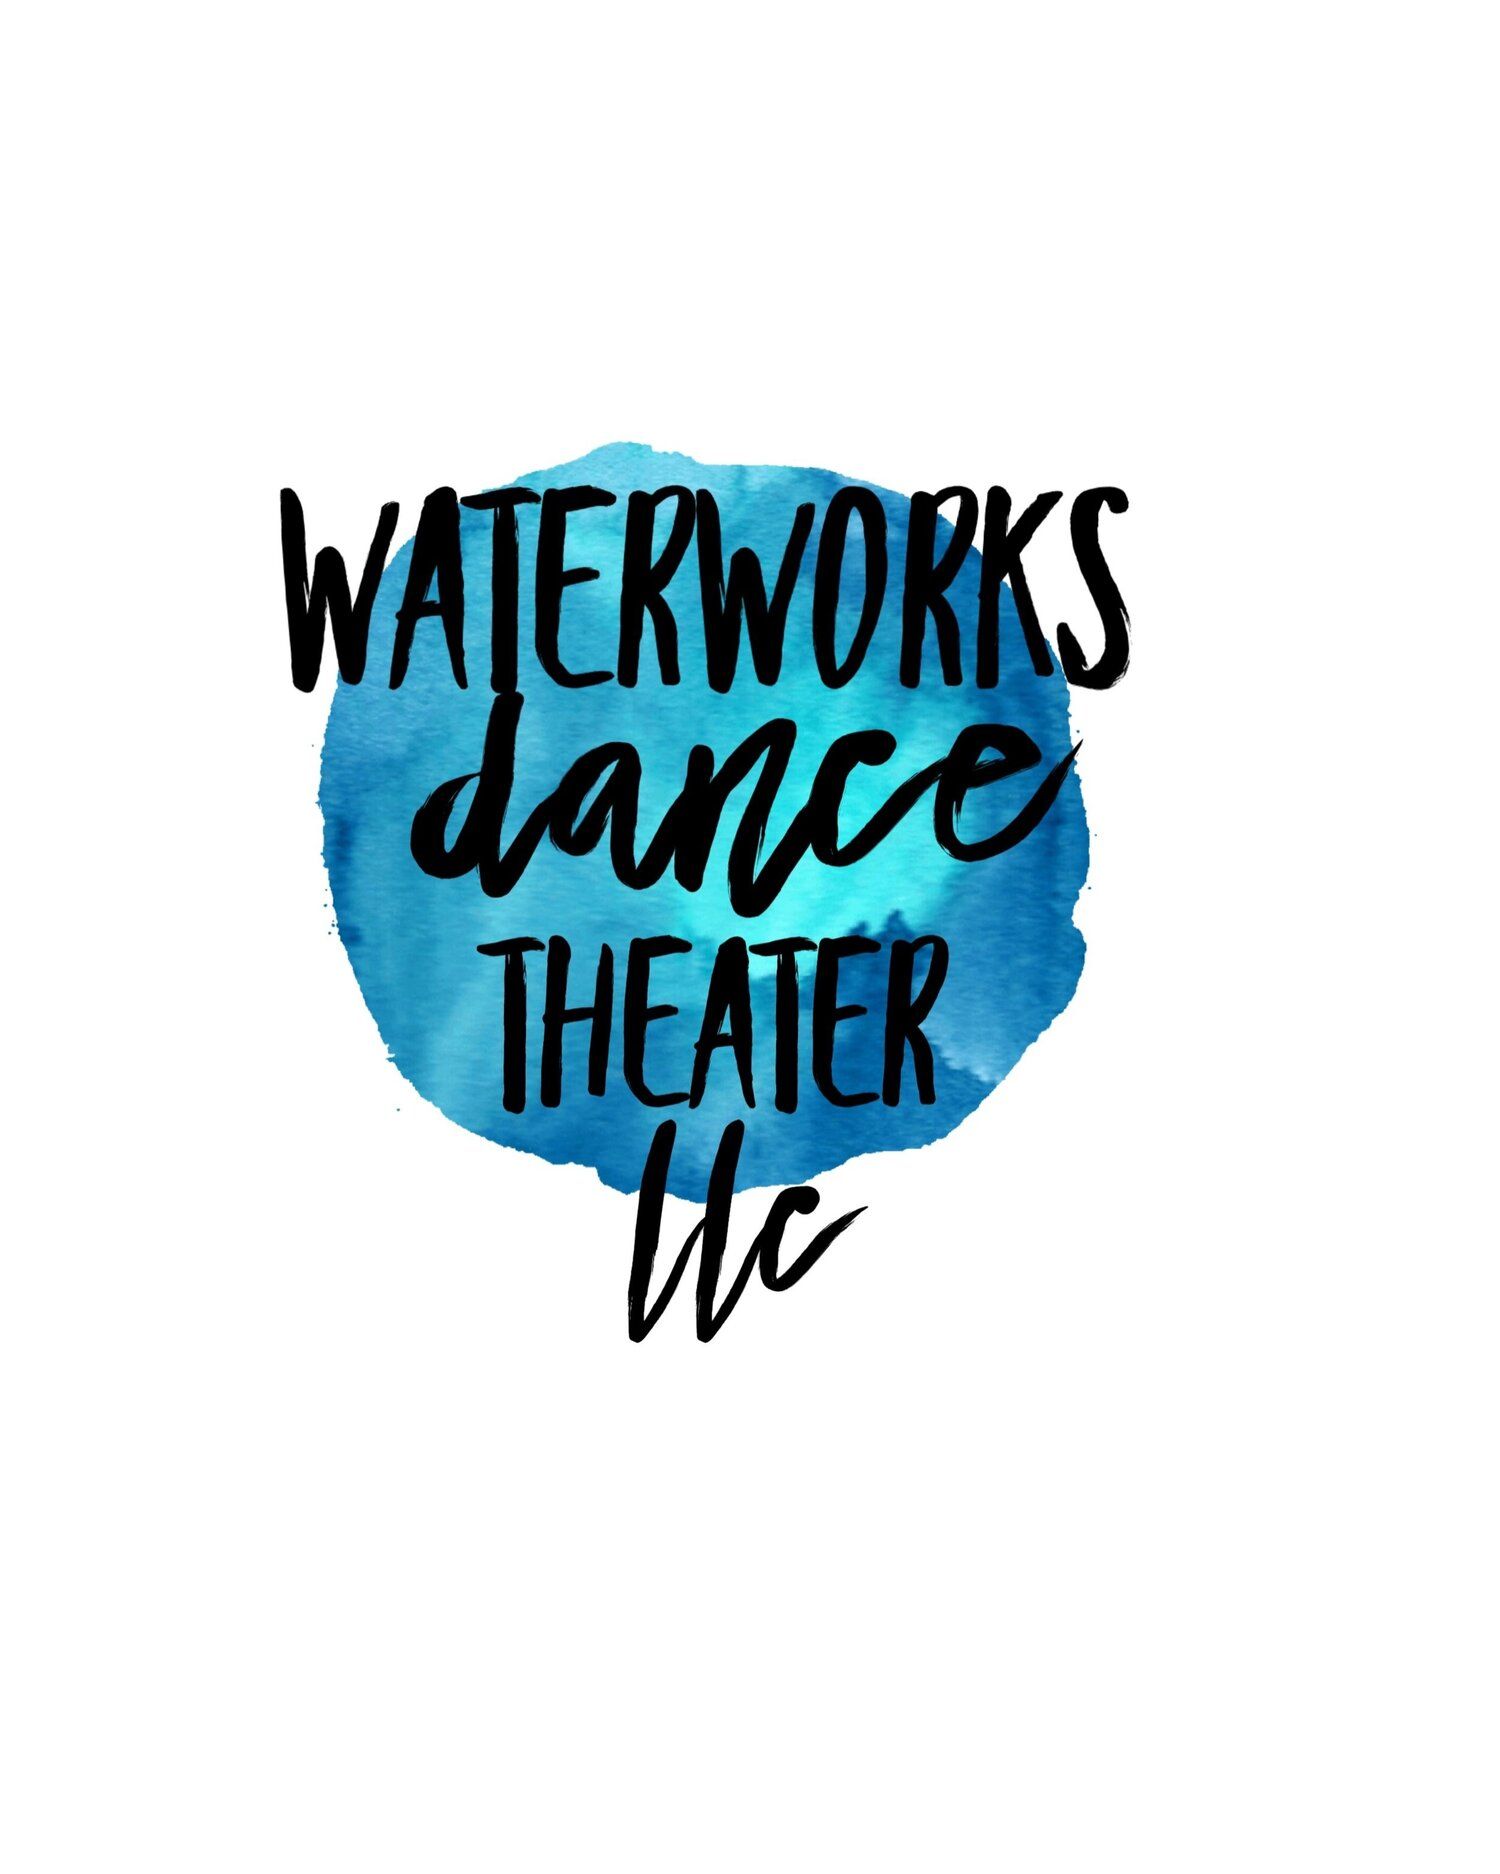 Waterworks Dance Theater